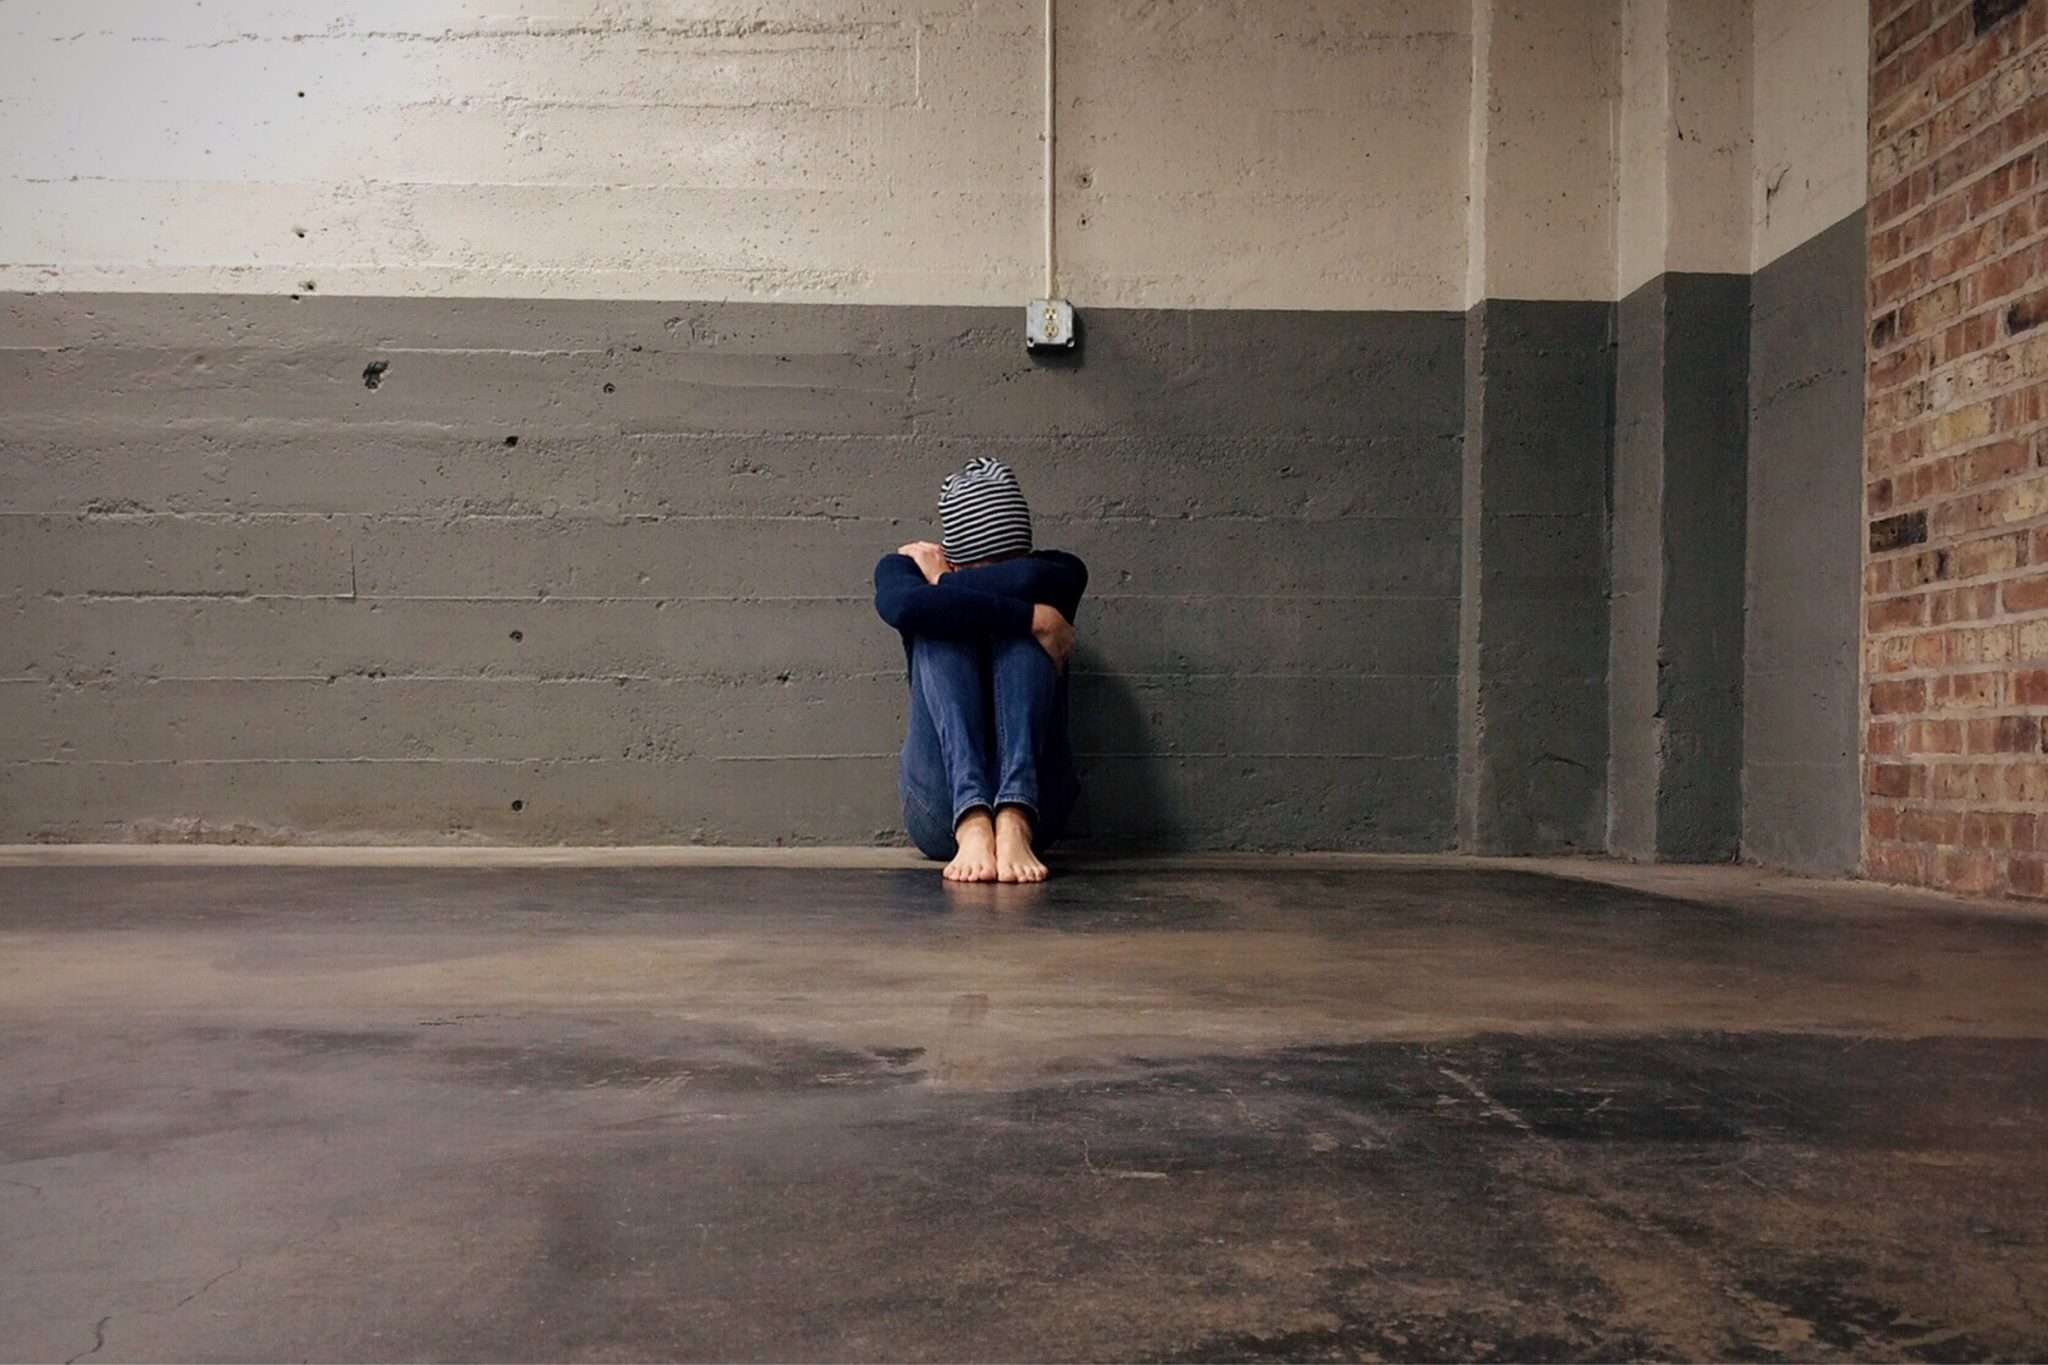 Feeling alone after relationship separation